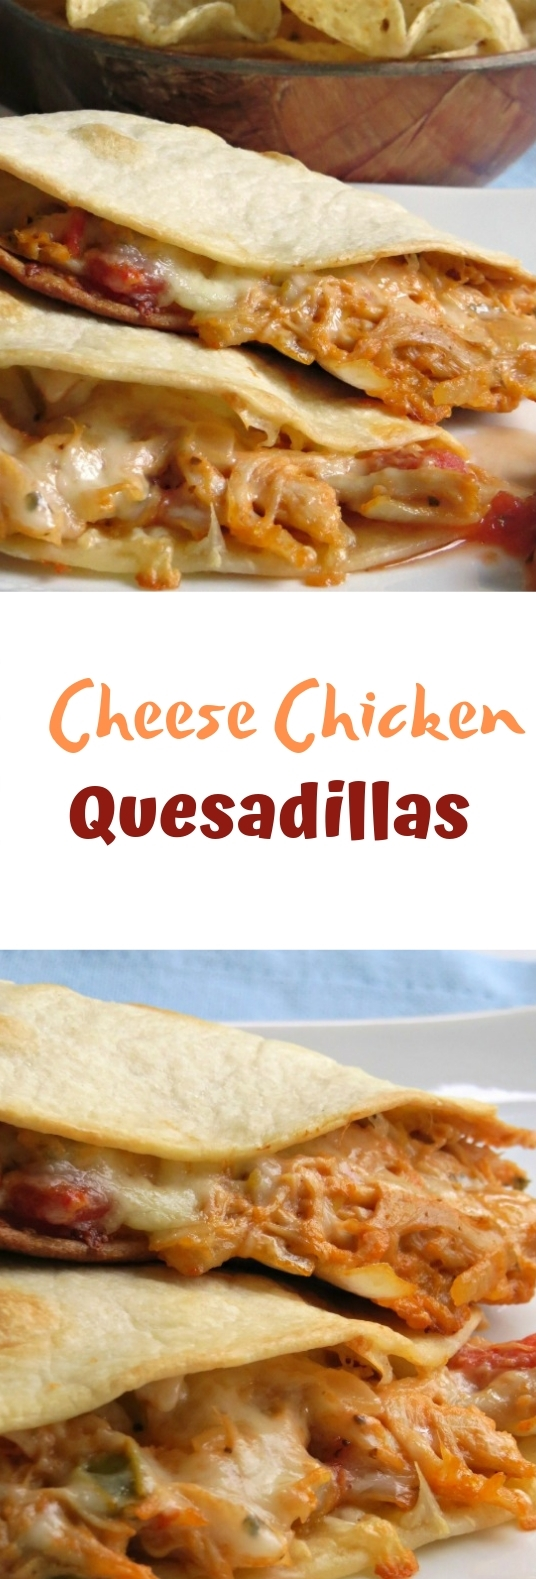 CHEESY CHICKEN QUESADILLAS #easy #meal